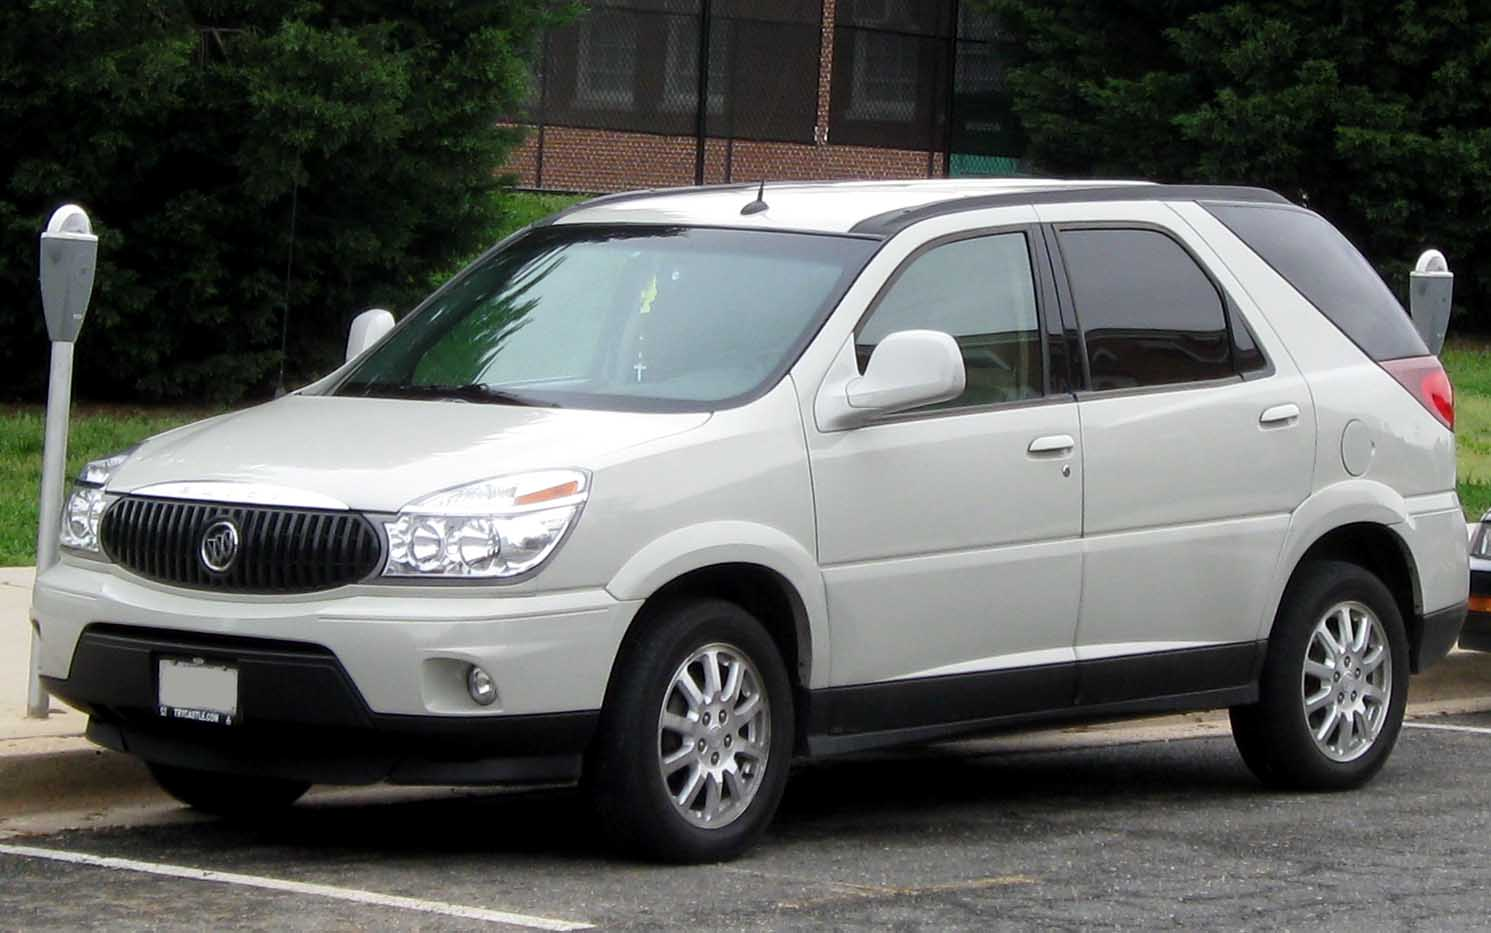 buick rendezvous tractor construction plant wiki. Black Bedroom Furniture Sets. Home Design Ideas